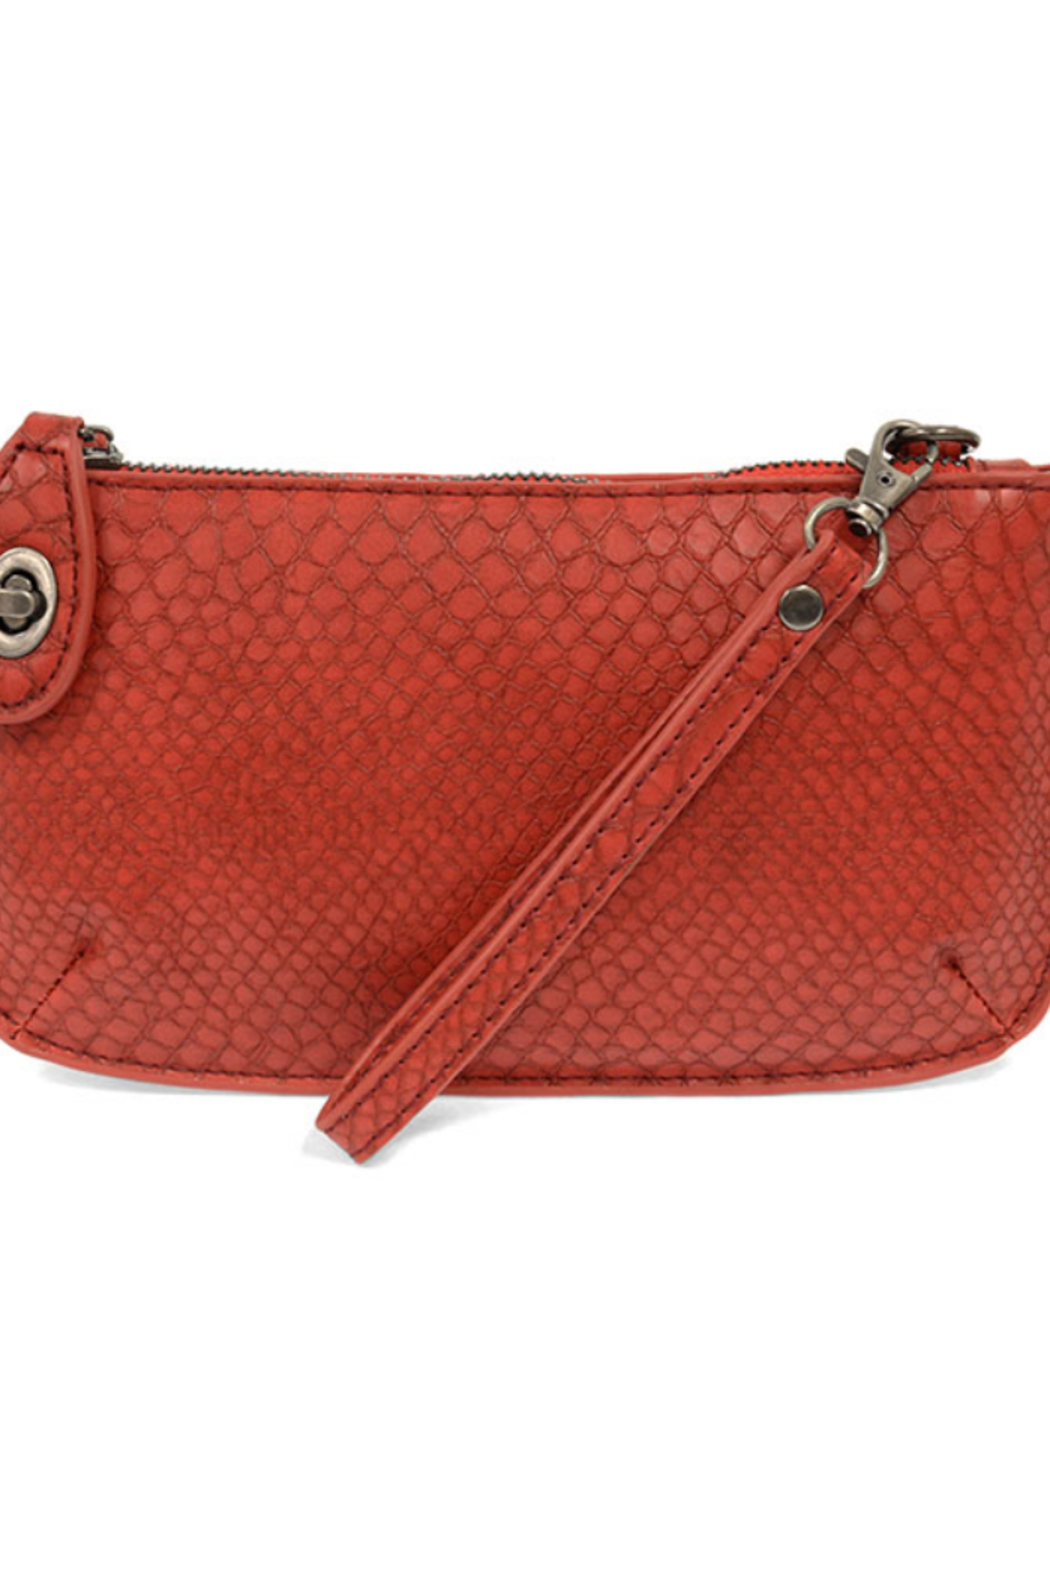 Joy Susan  Python Mini Crossbody Wristlet Clutch - Main Image